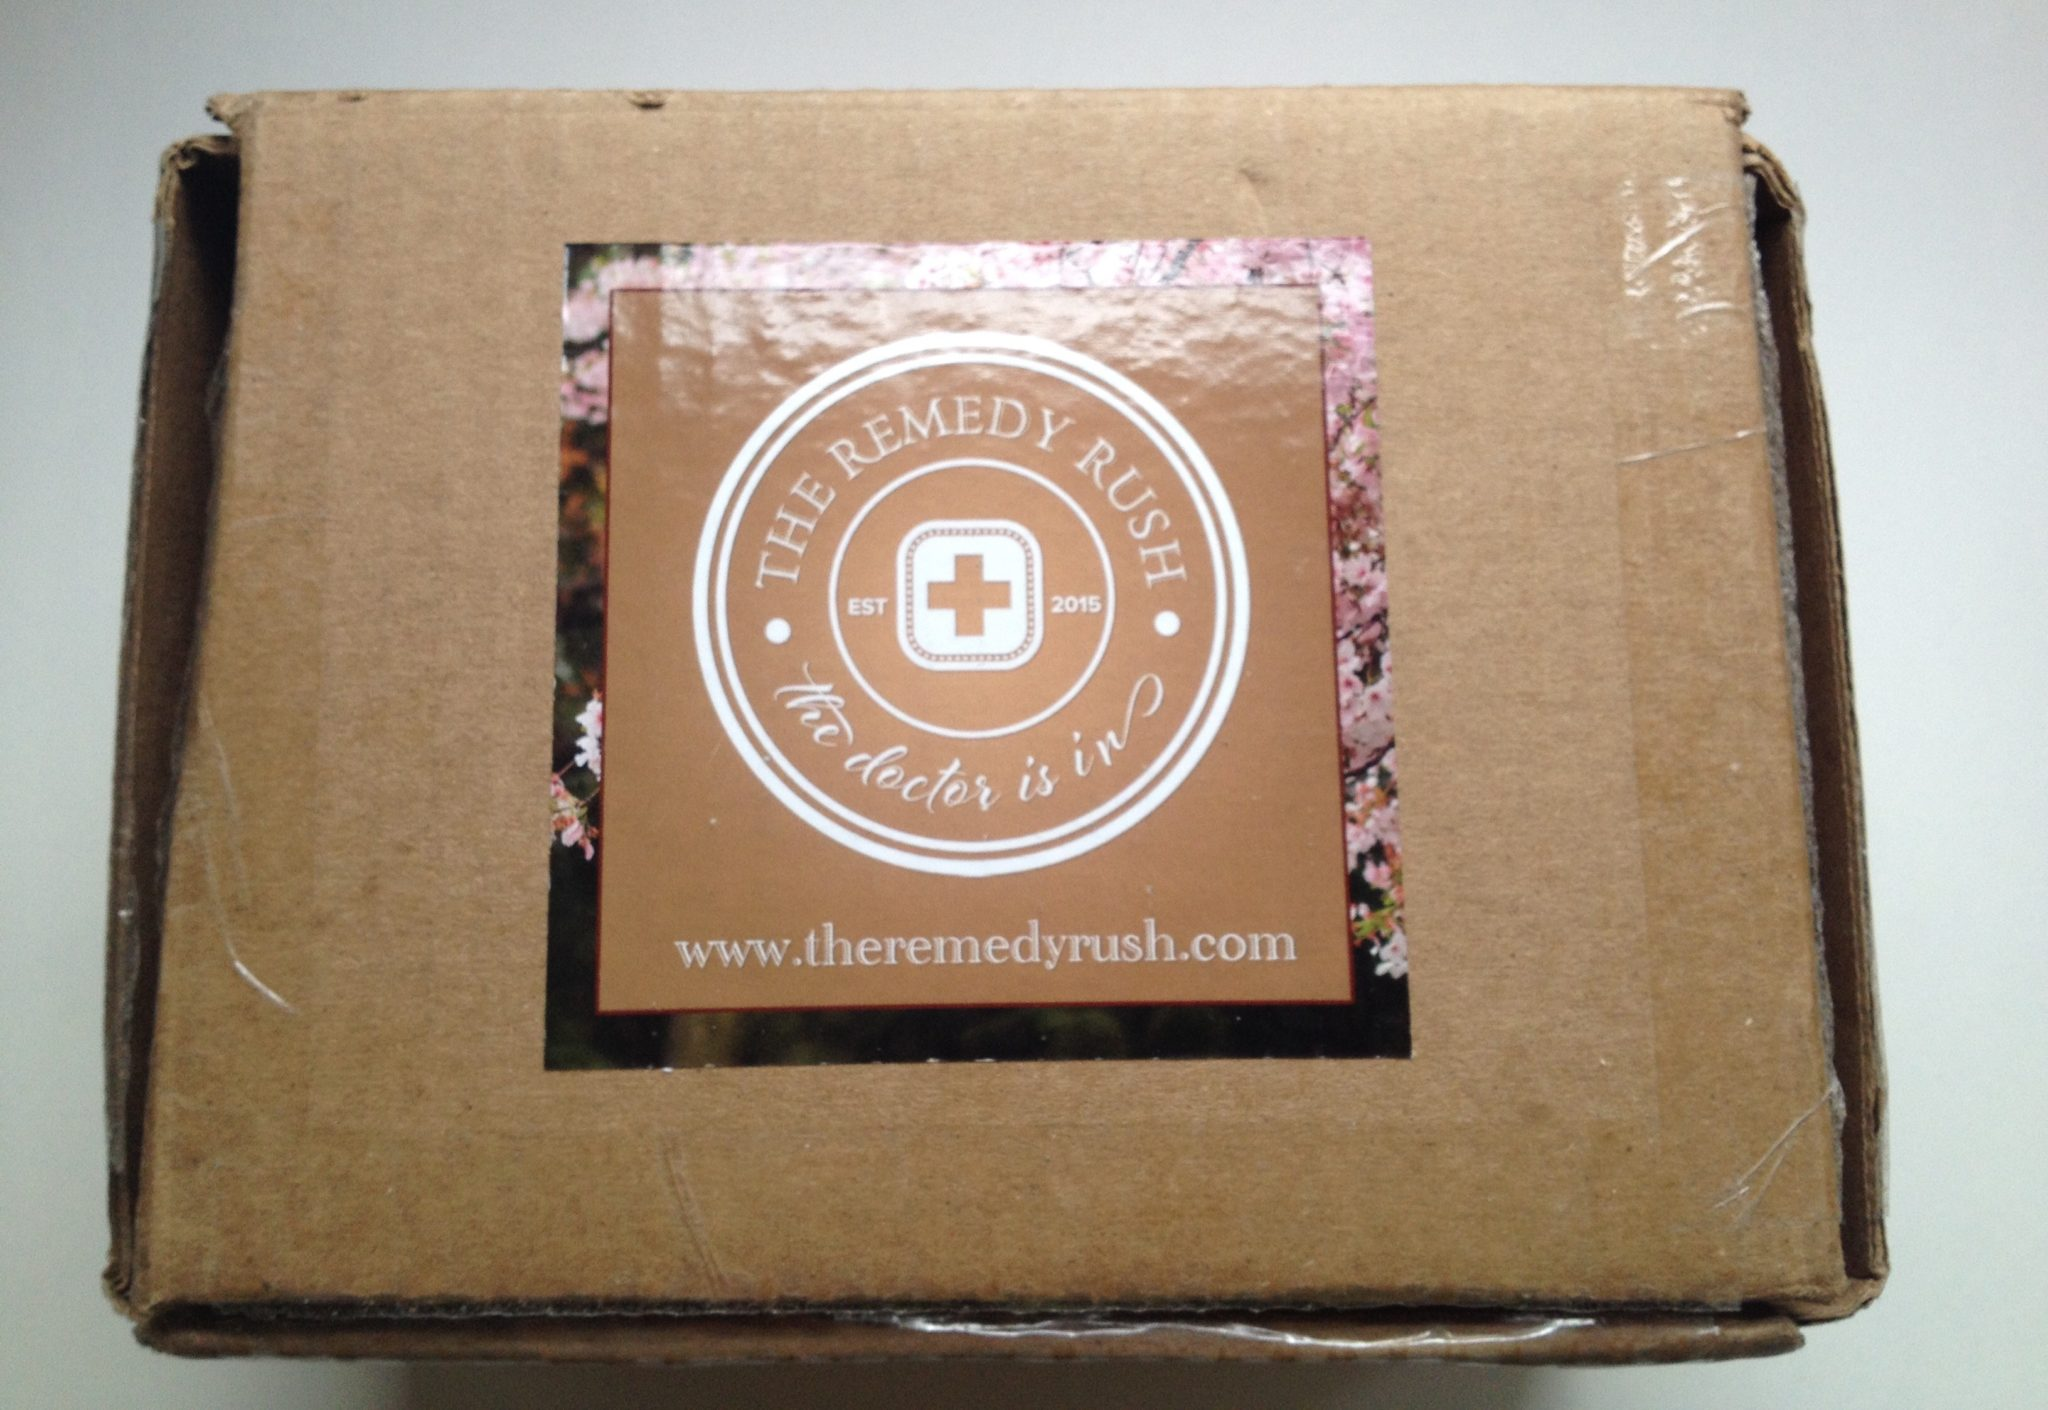 the remedy rush box